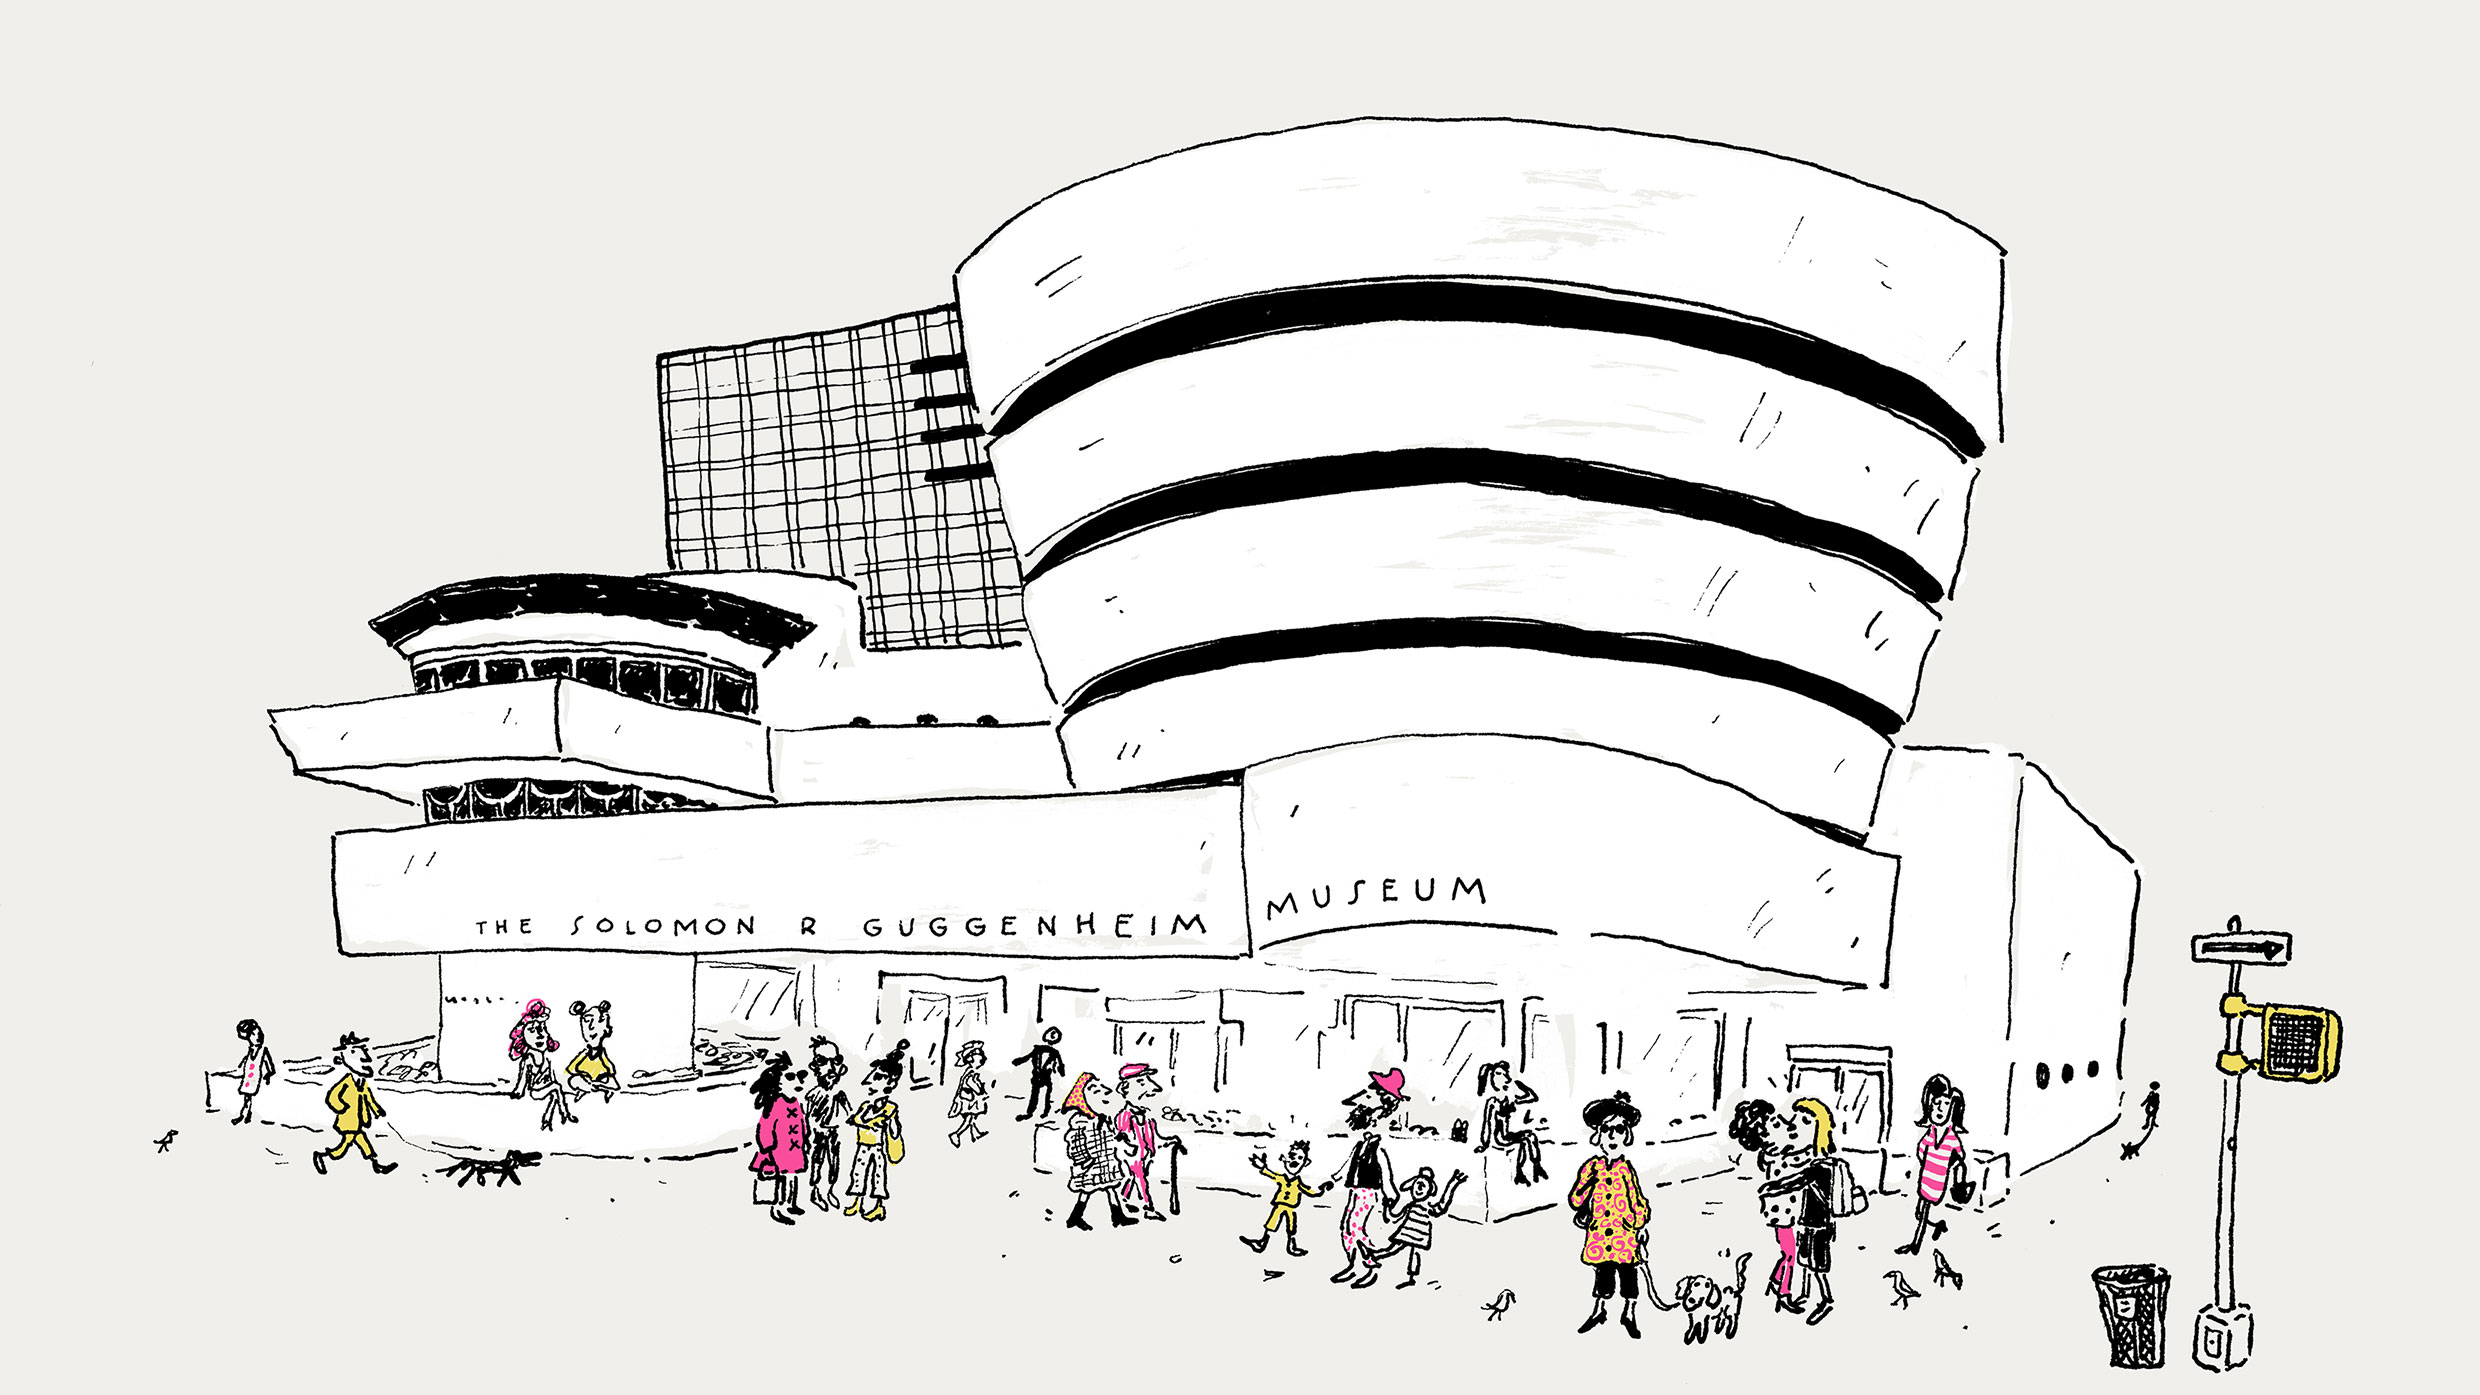 The Solomon R. Guggenheim Museum, New York. Image © 2017 Joana Avillez/Illustration Division